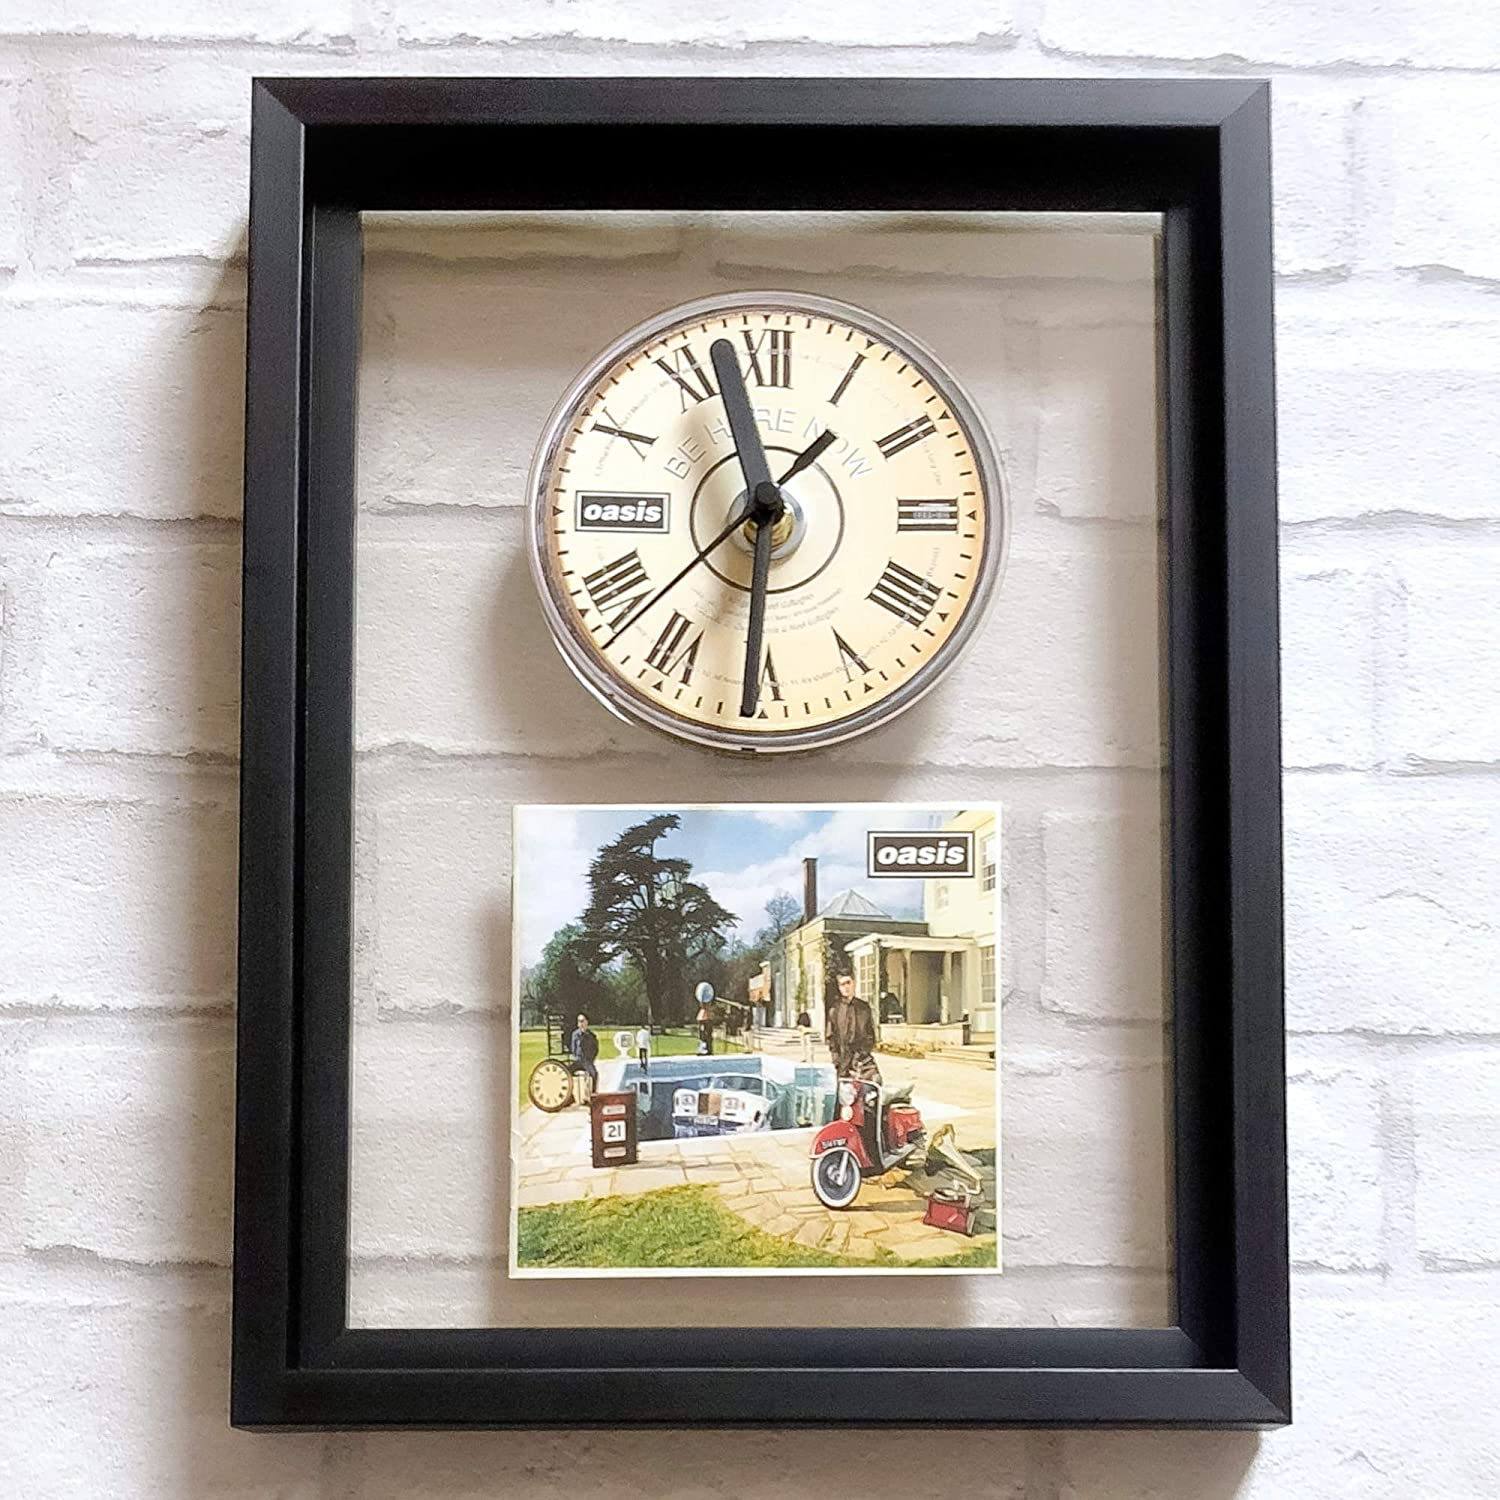 FRAMED CD ART CLOCK//Exclusive Design Whats the Story OASIS Morning Glory?